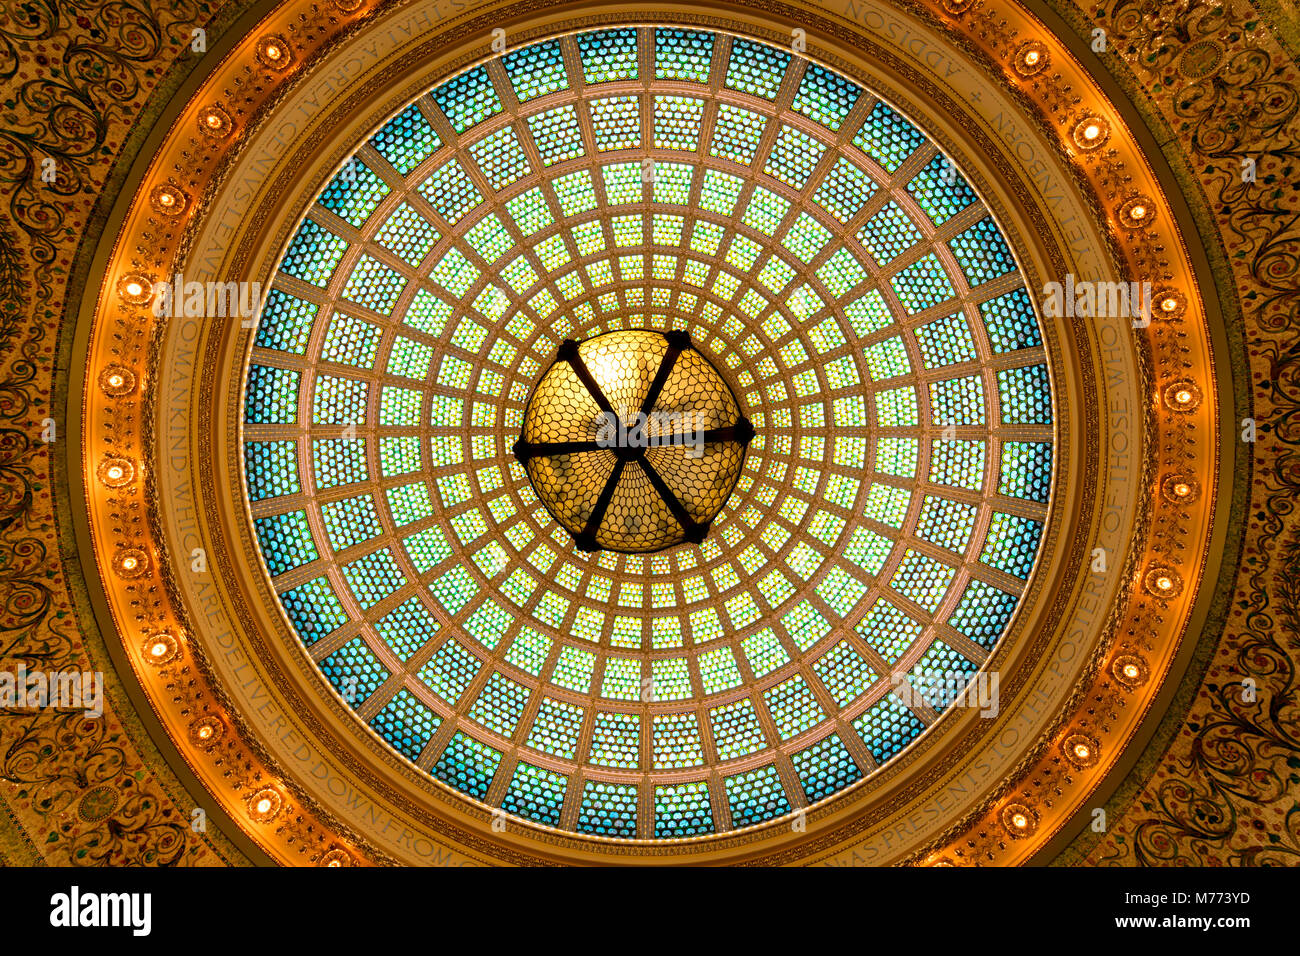 Chicago, Illinois - June 2017. View of the interior dome of the Cultural Center. Stock Photo